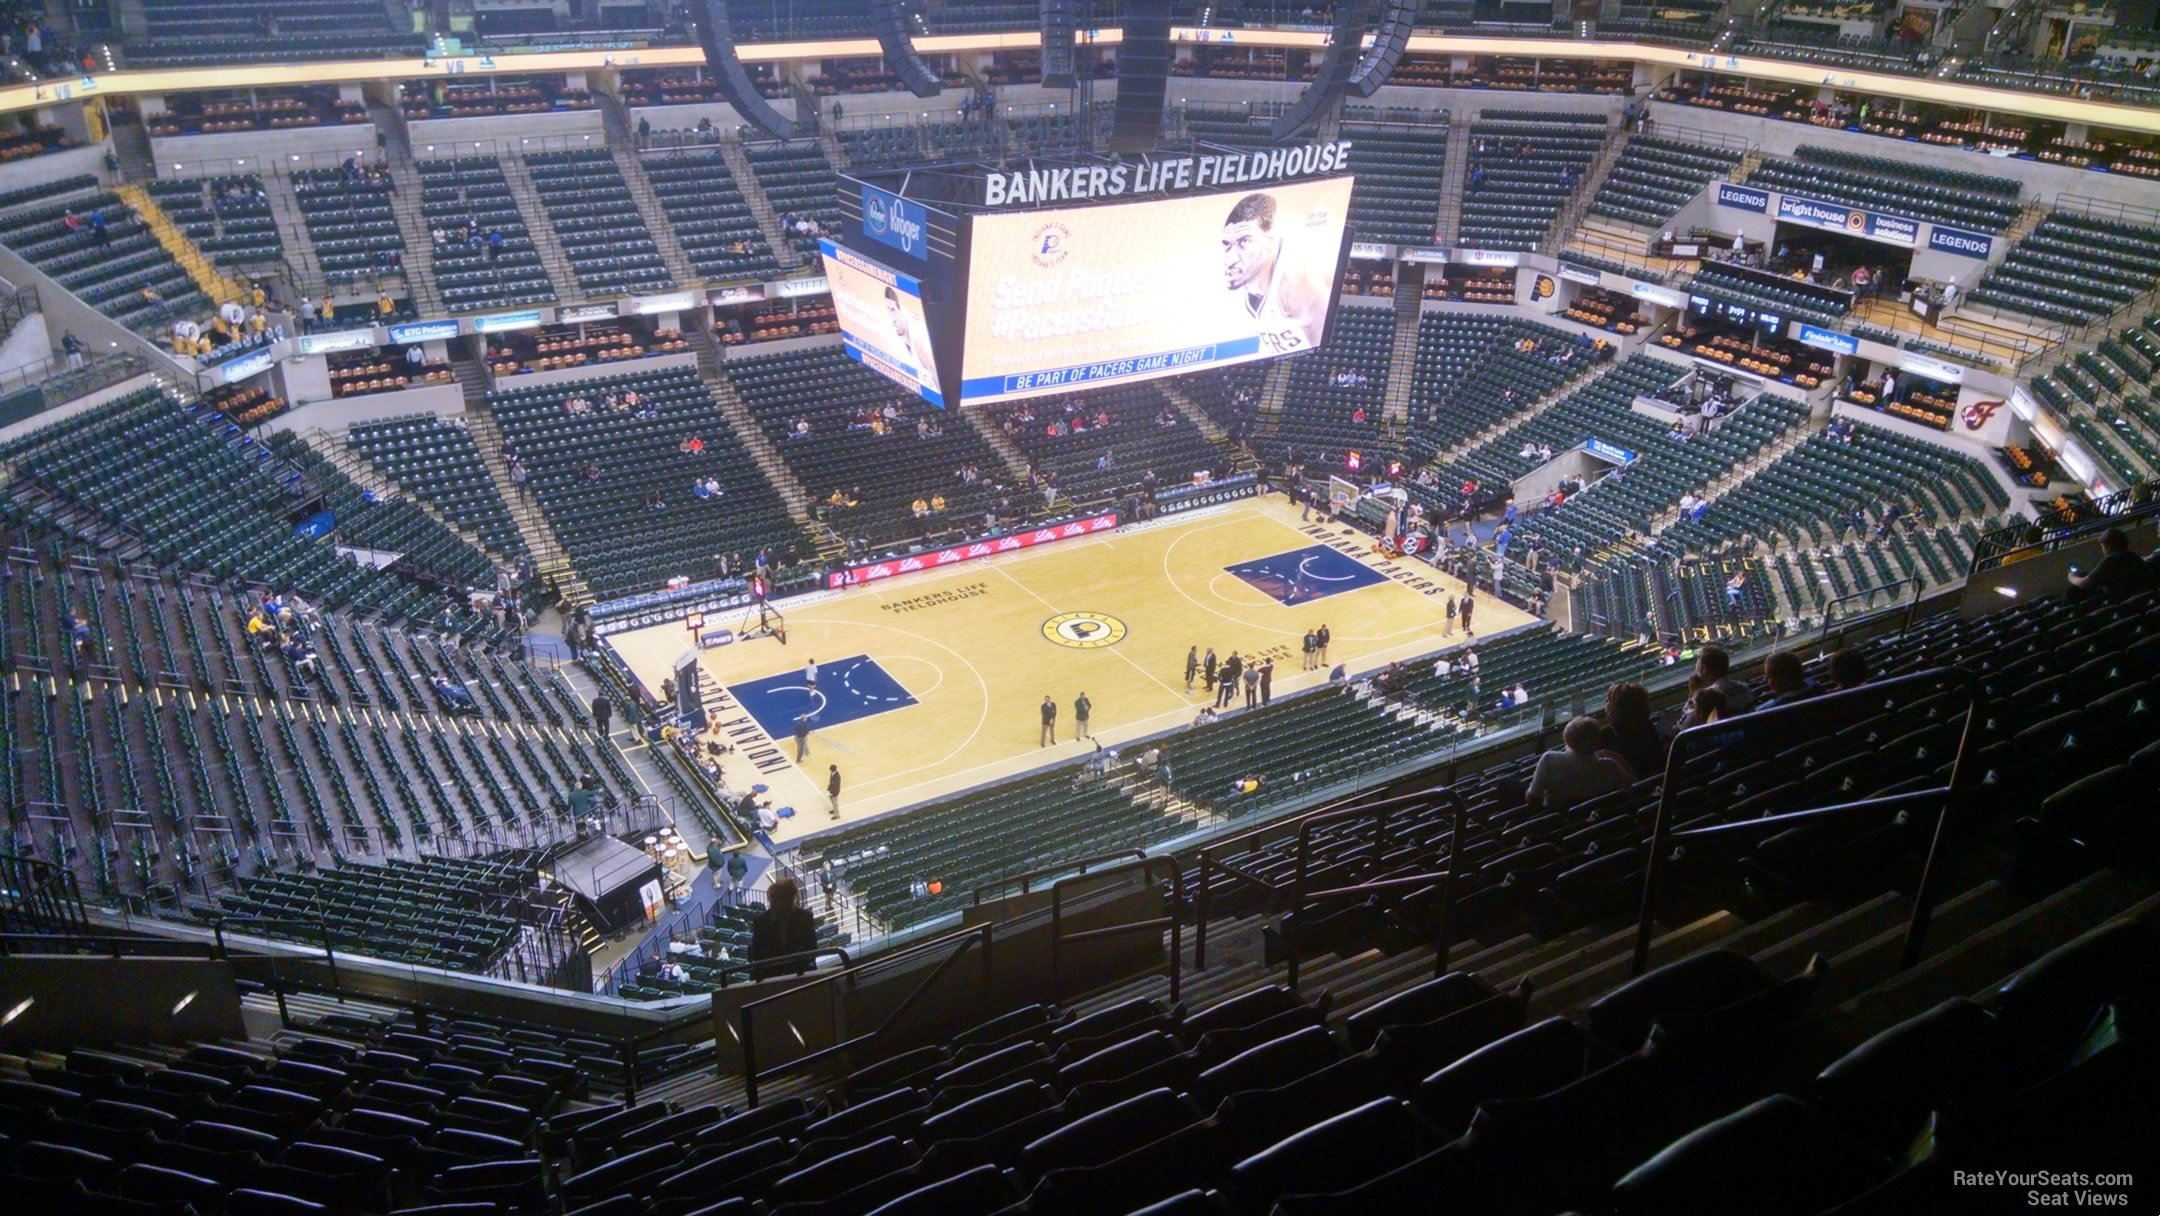 Seat View for Bankers Life Fieldhouse Section 227, Row 15